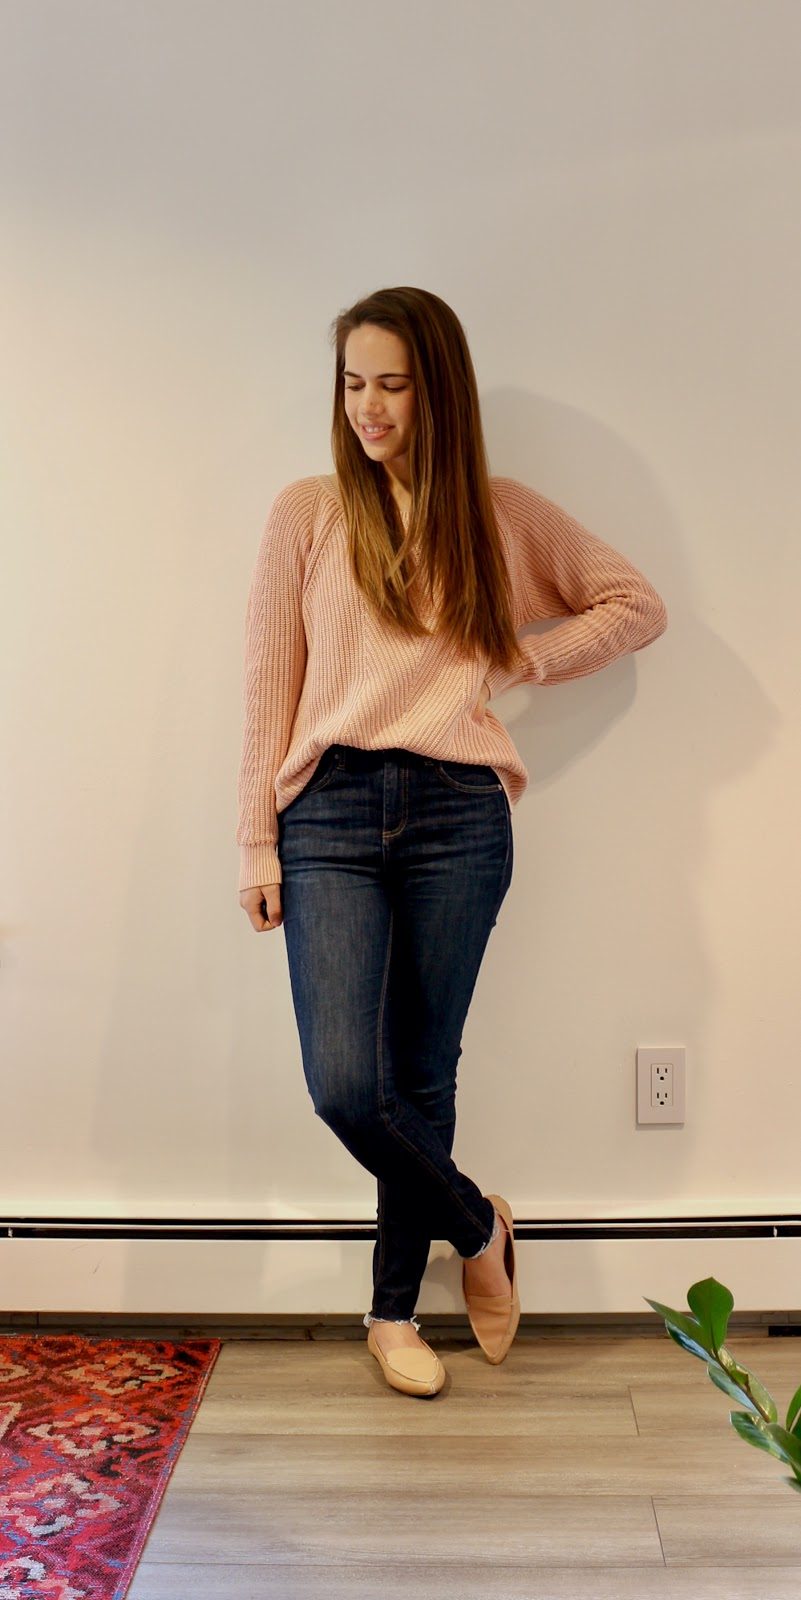 Jules in Flats - Gap Faded Sweater with Rag & Bone Skinny Jeans (Business Casual Workwear on a Budget)